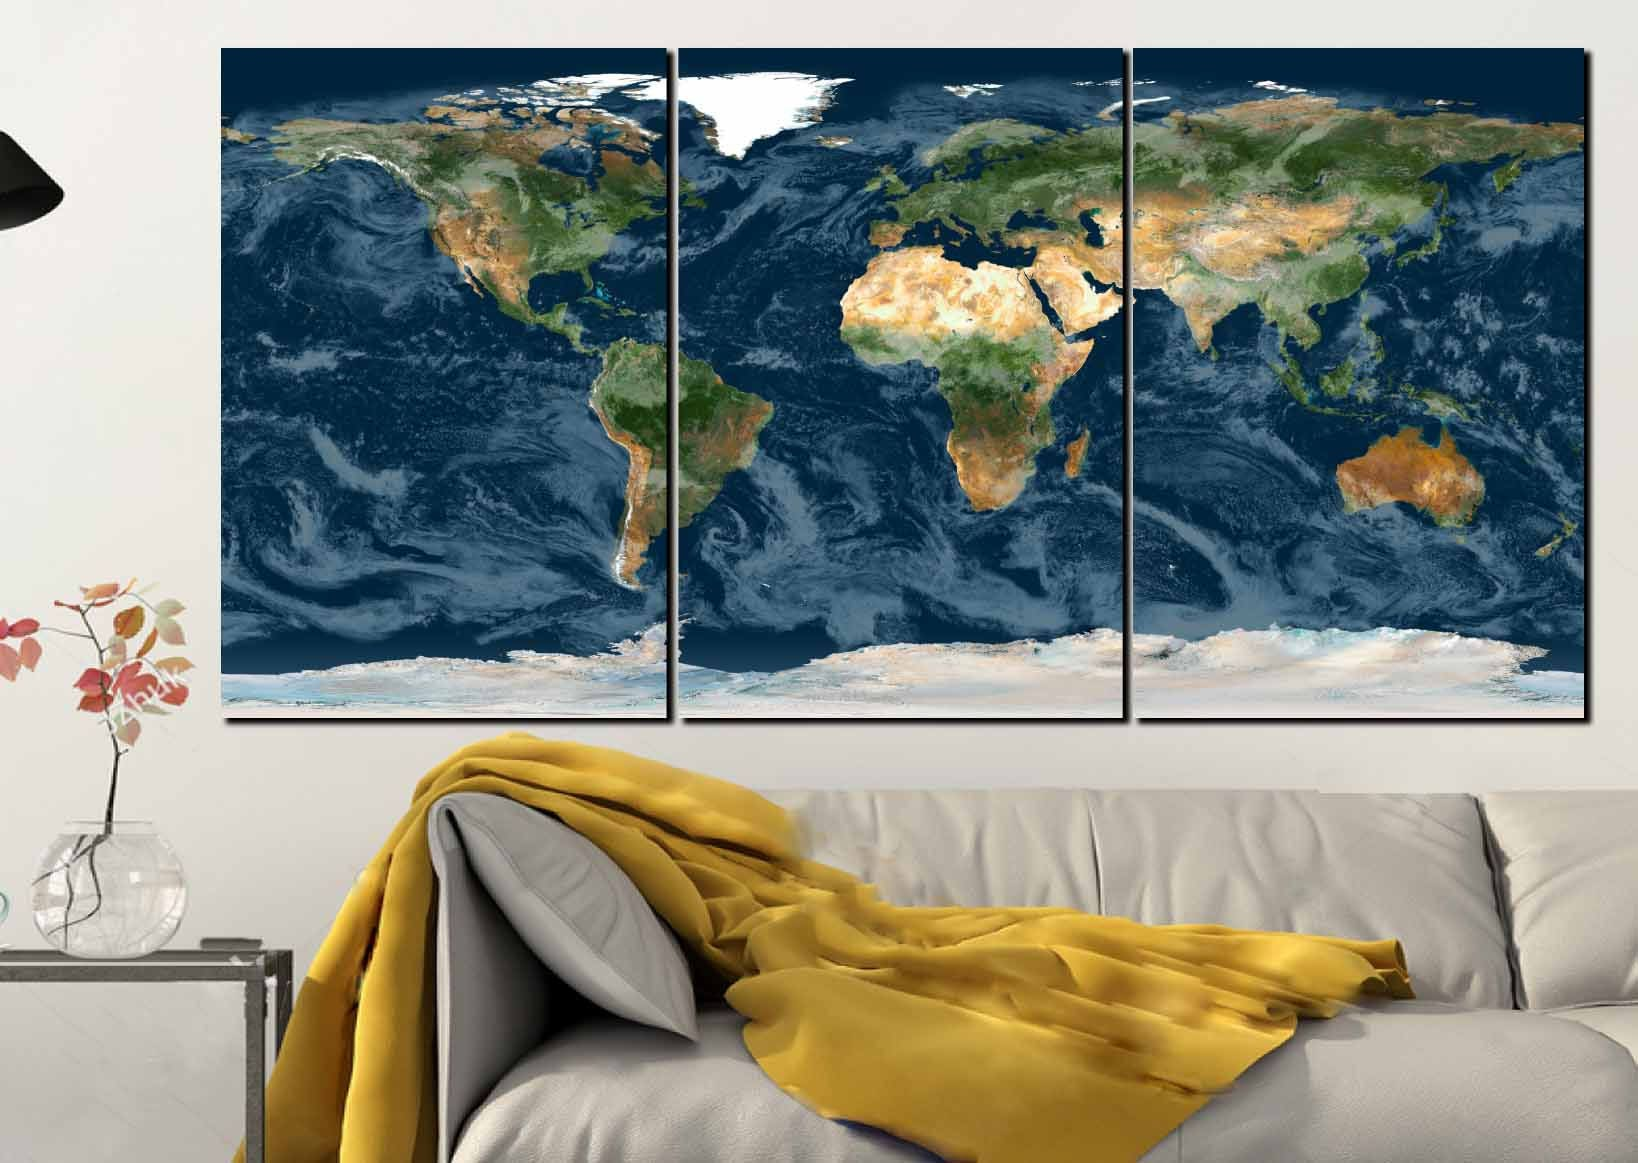 world mapworld map wall artworld map artworld map earth artlarge world mapoffice wall artworld map art print3d map art